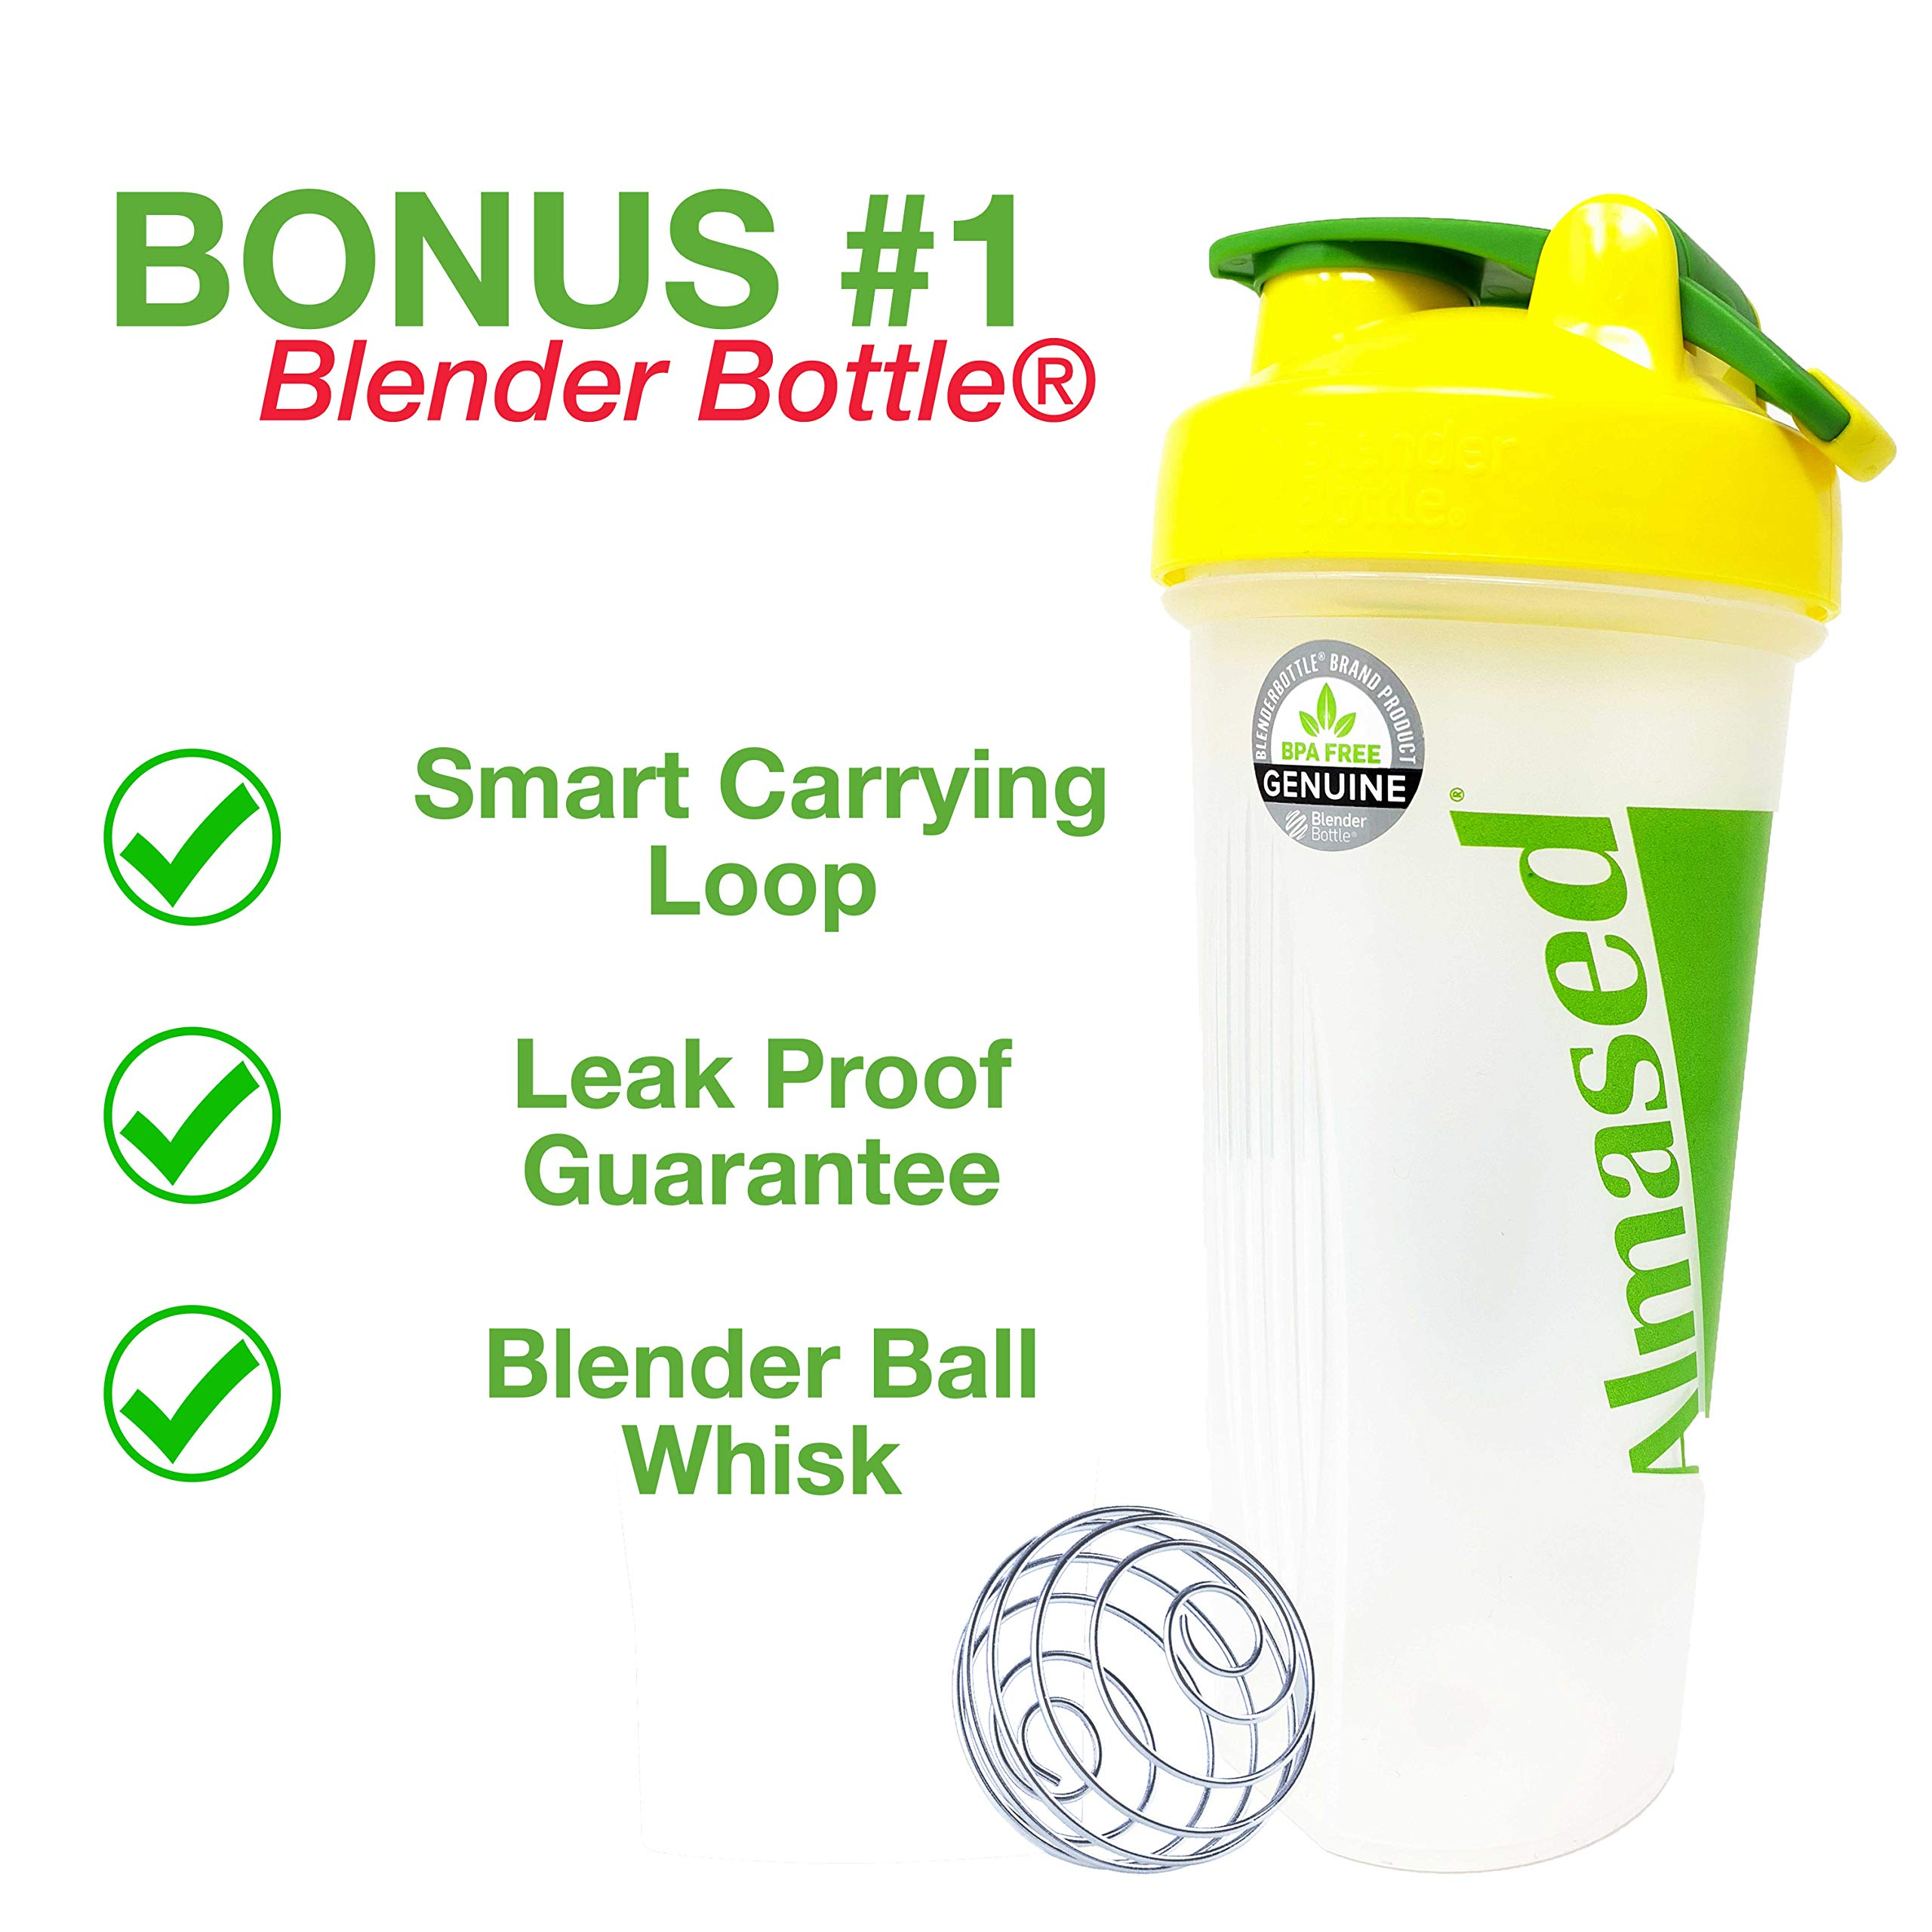 Almased Meal Replacement Shake - Plant Based Protein Powder for Weight Loss - Shake for Weight Management (2 pack +Blender Bottle Shaker and Diet Recipe Book) by ALMASED (Image #3)